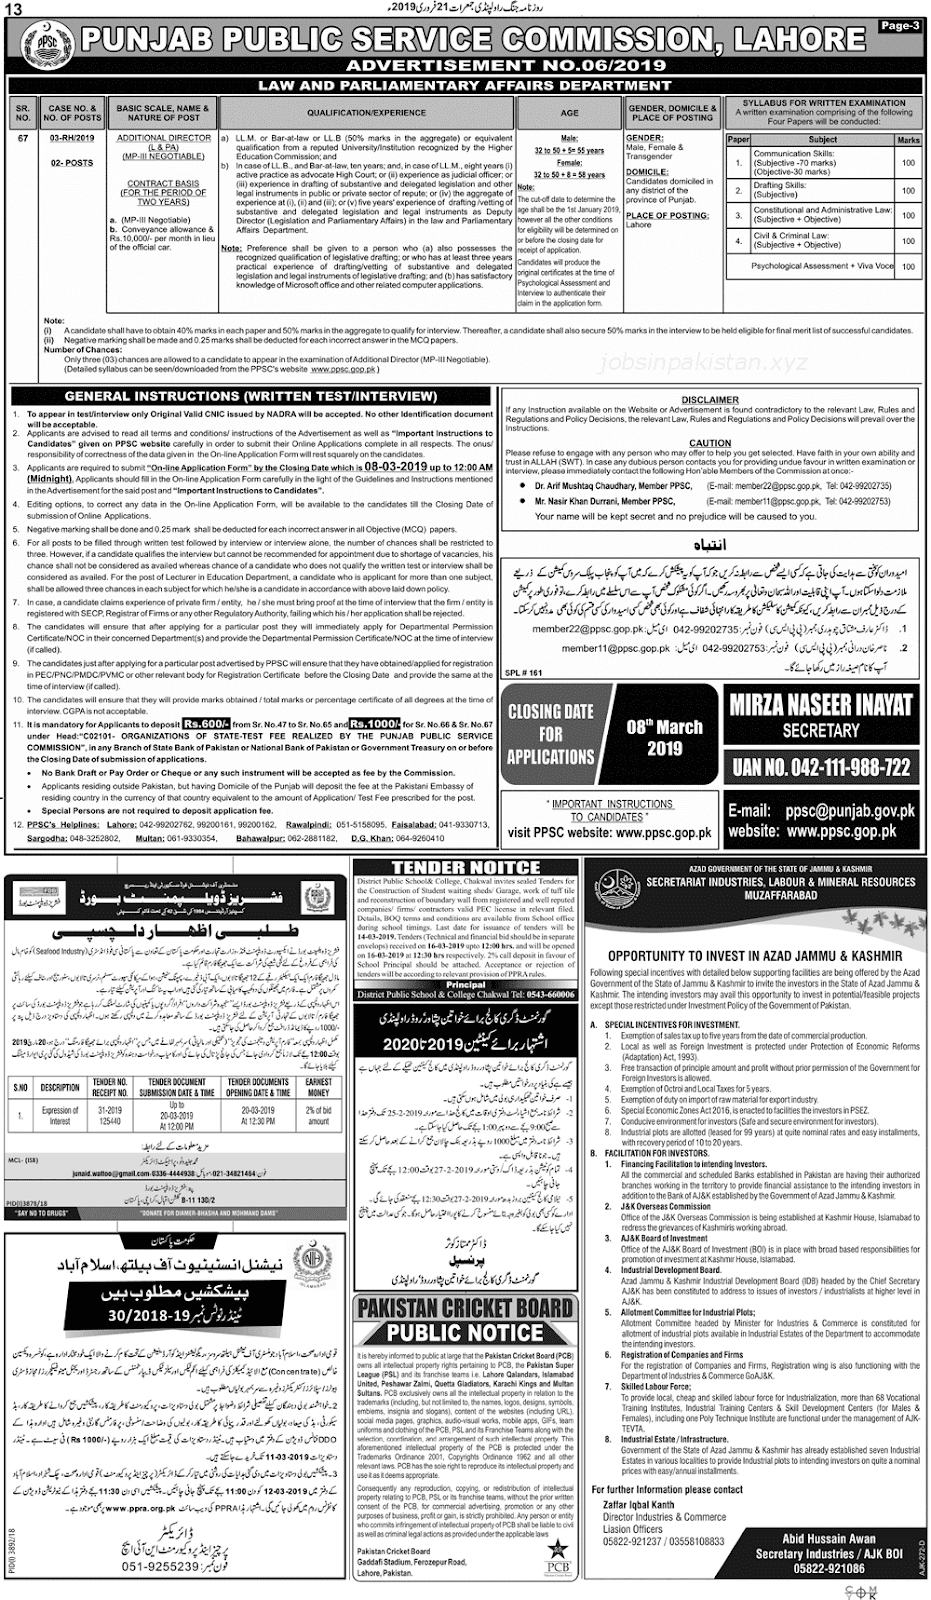 PPSC Advertisement 06/2019 Page No. 3/3